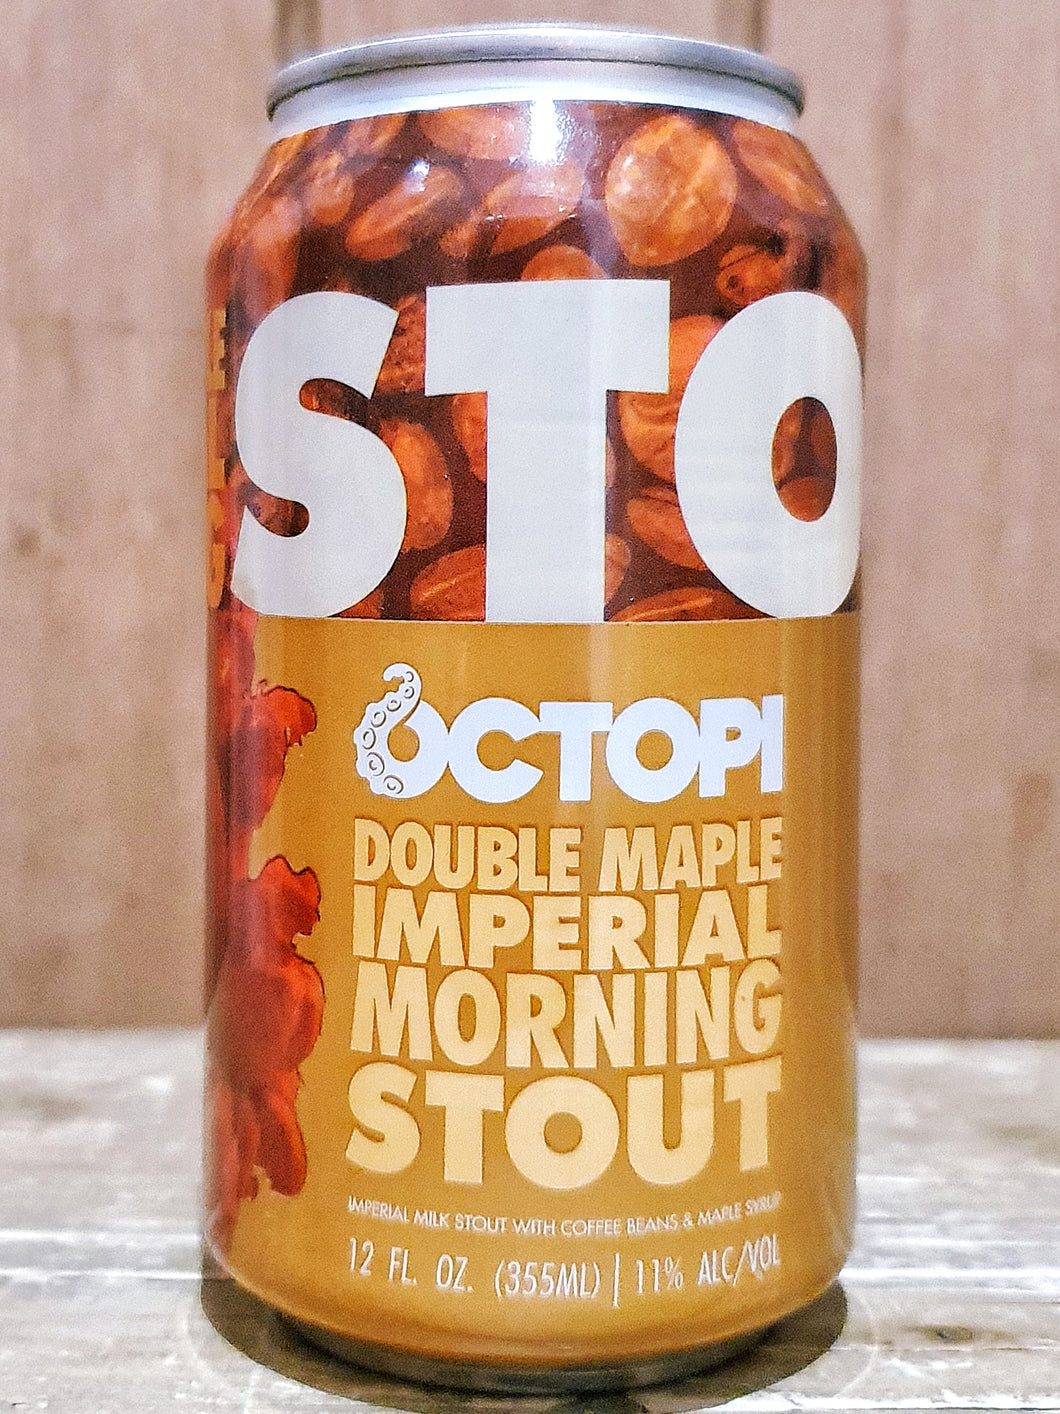 Octopi - Double Maple Imperial Morning Stout